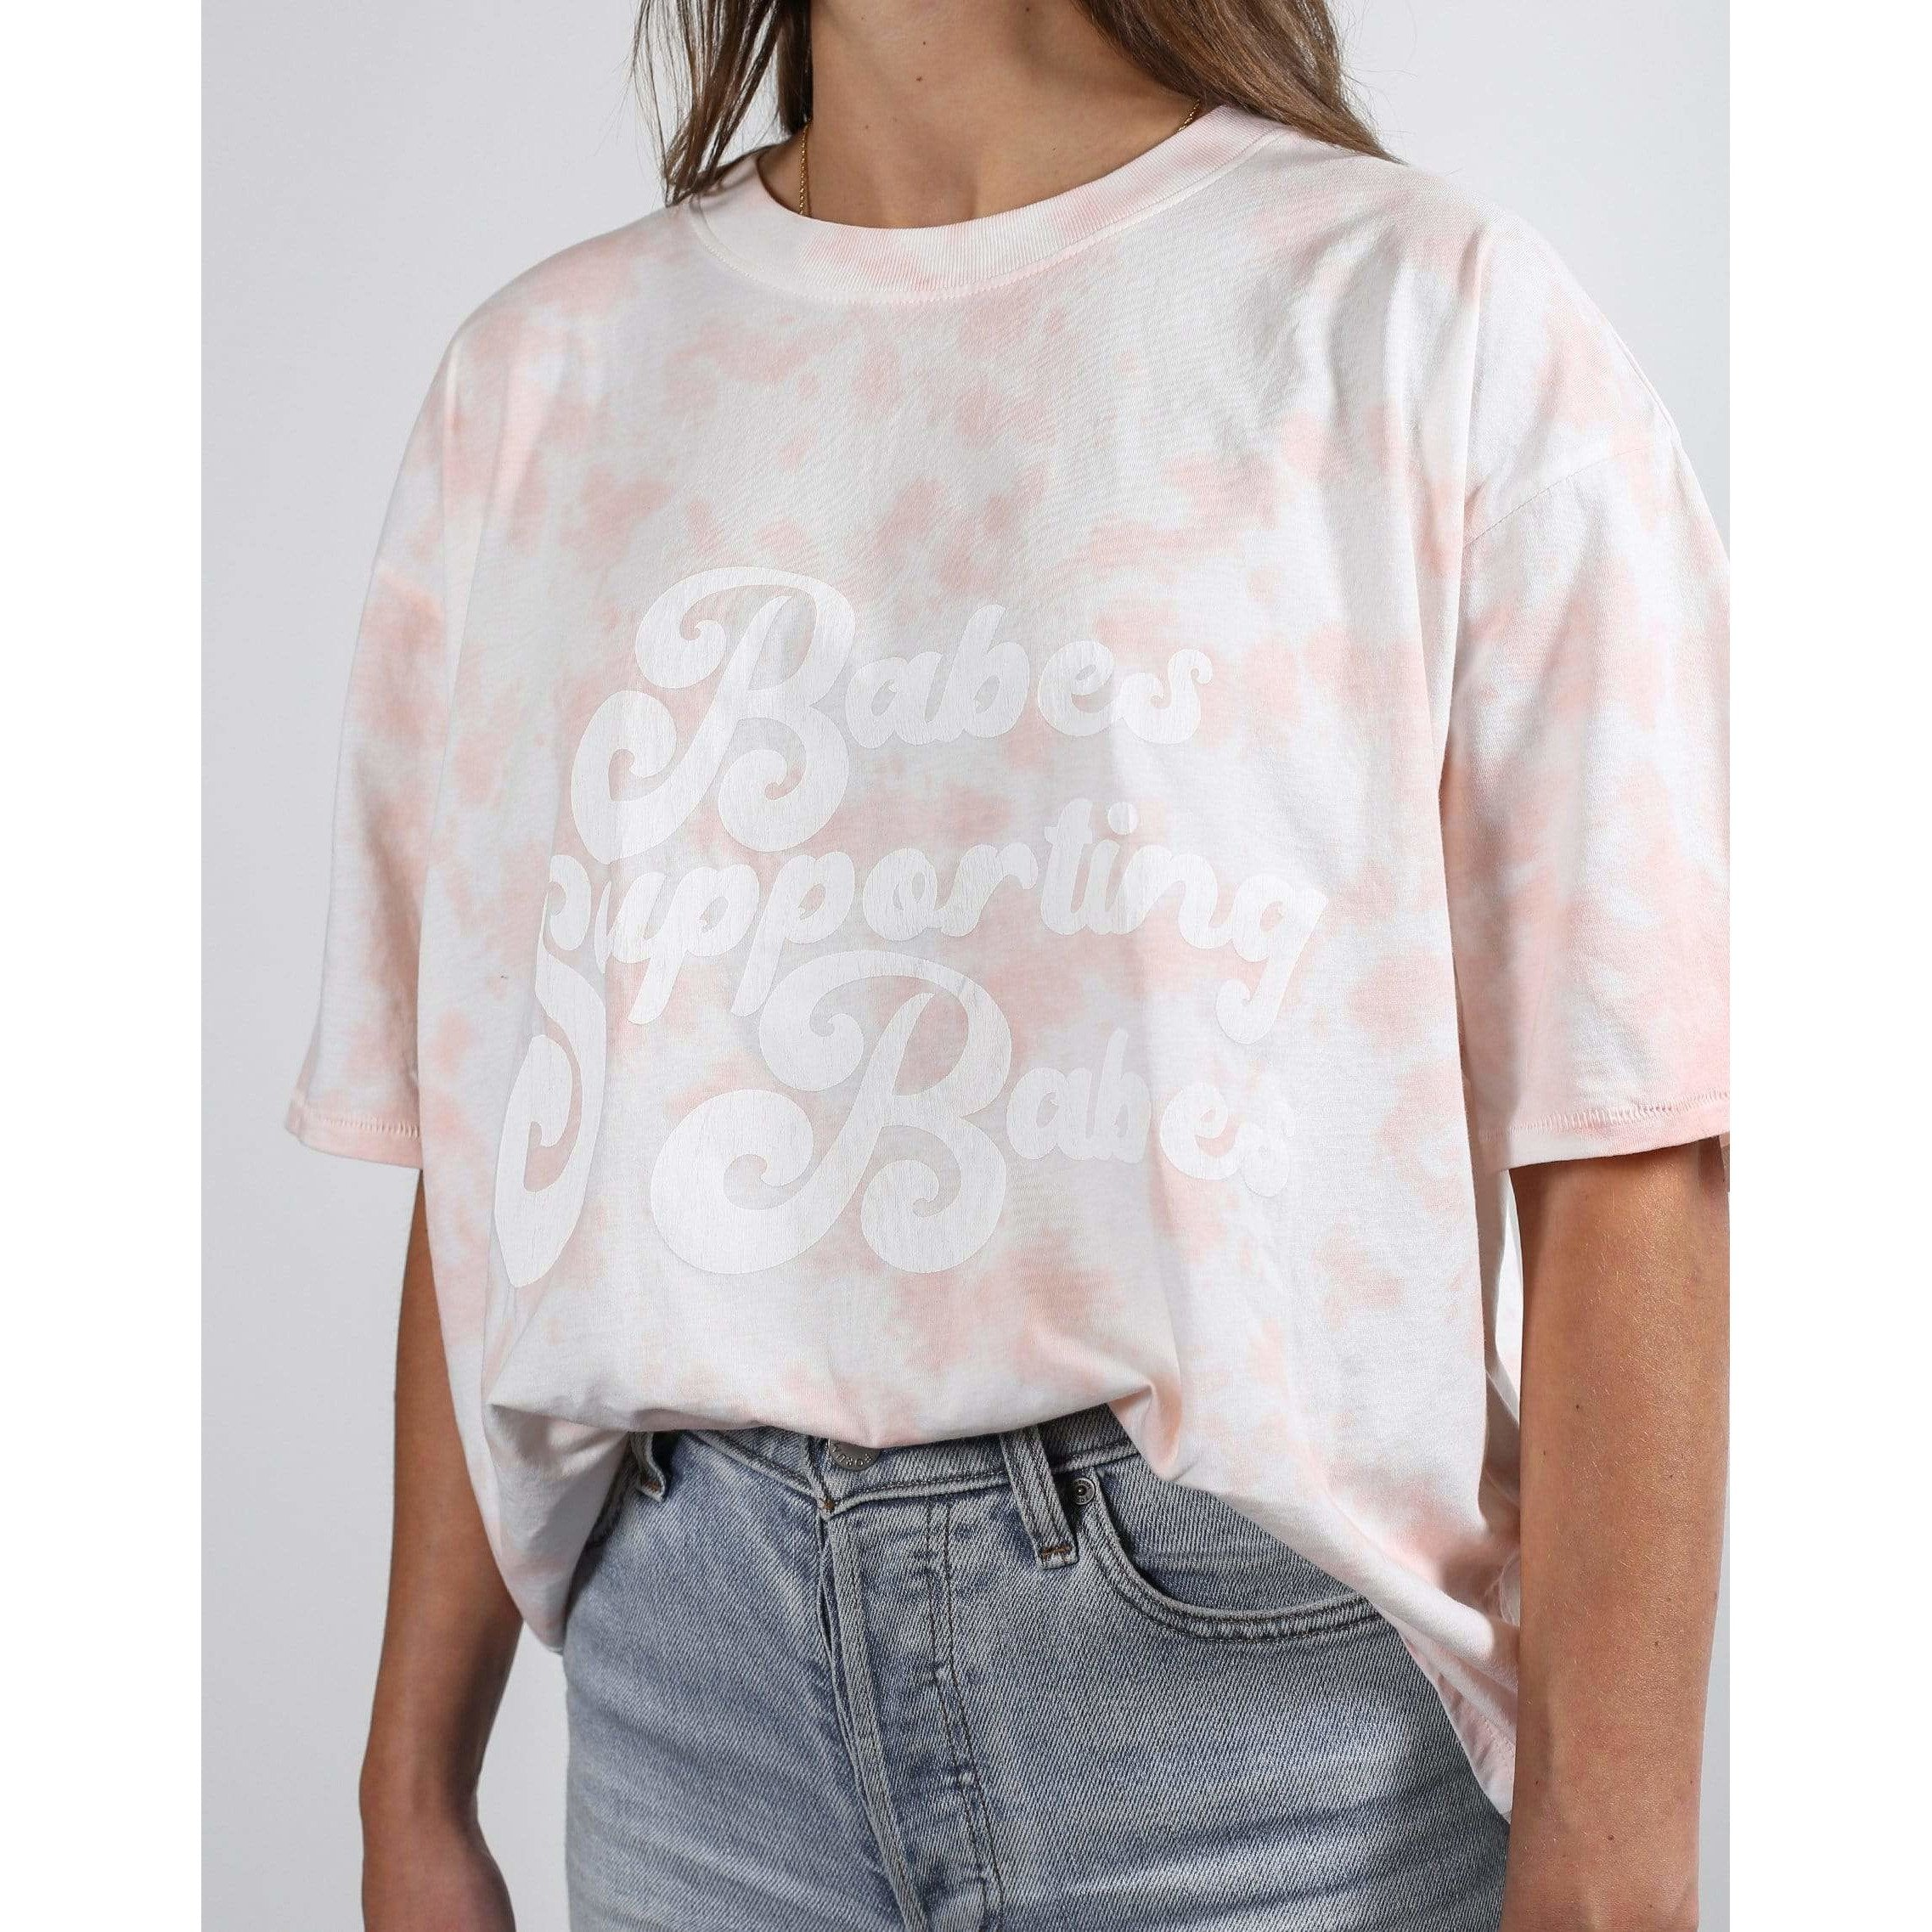 Brunette the Label Brunette the Label Marble Boxy Tee